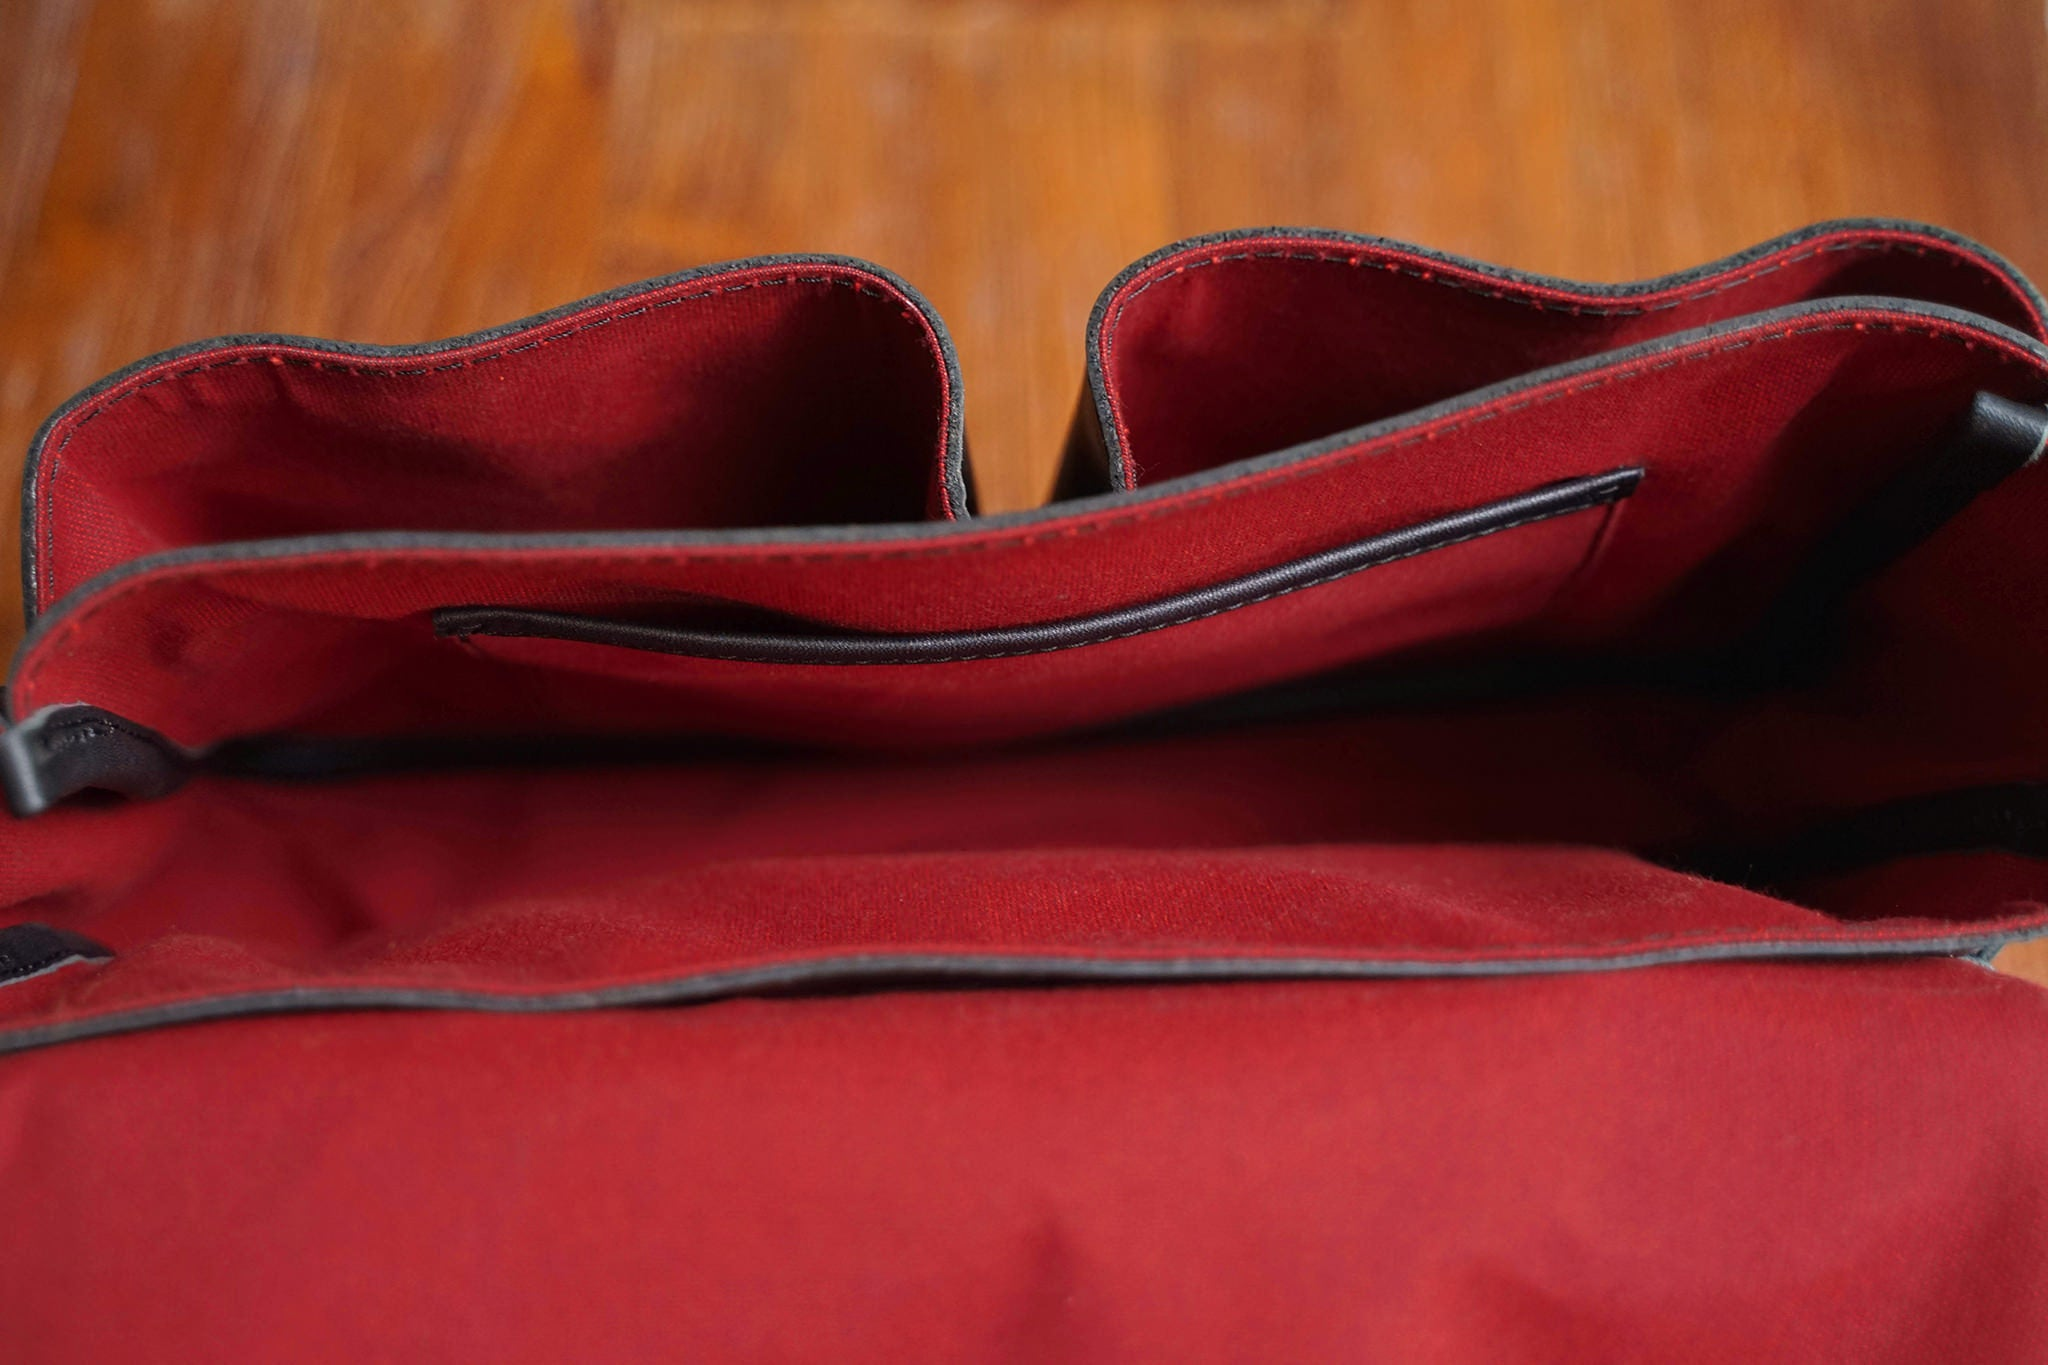 A view of the inside of the F.C. while empty. Note that all inside facing accessories such as rivets are covered, to avoid scratching the bag's contents.